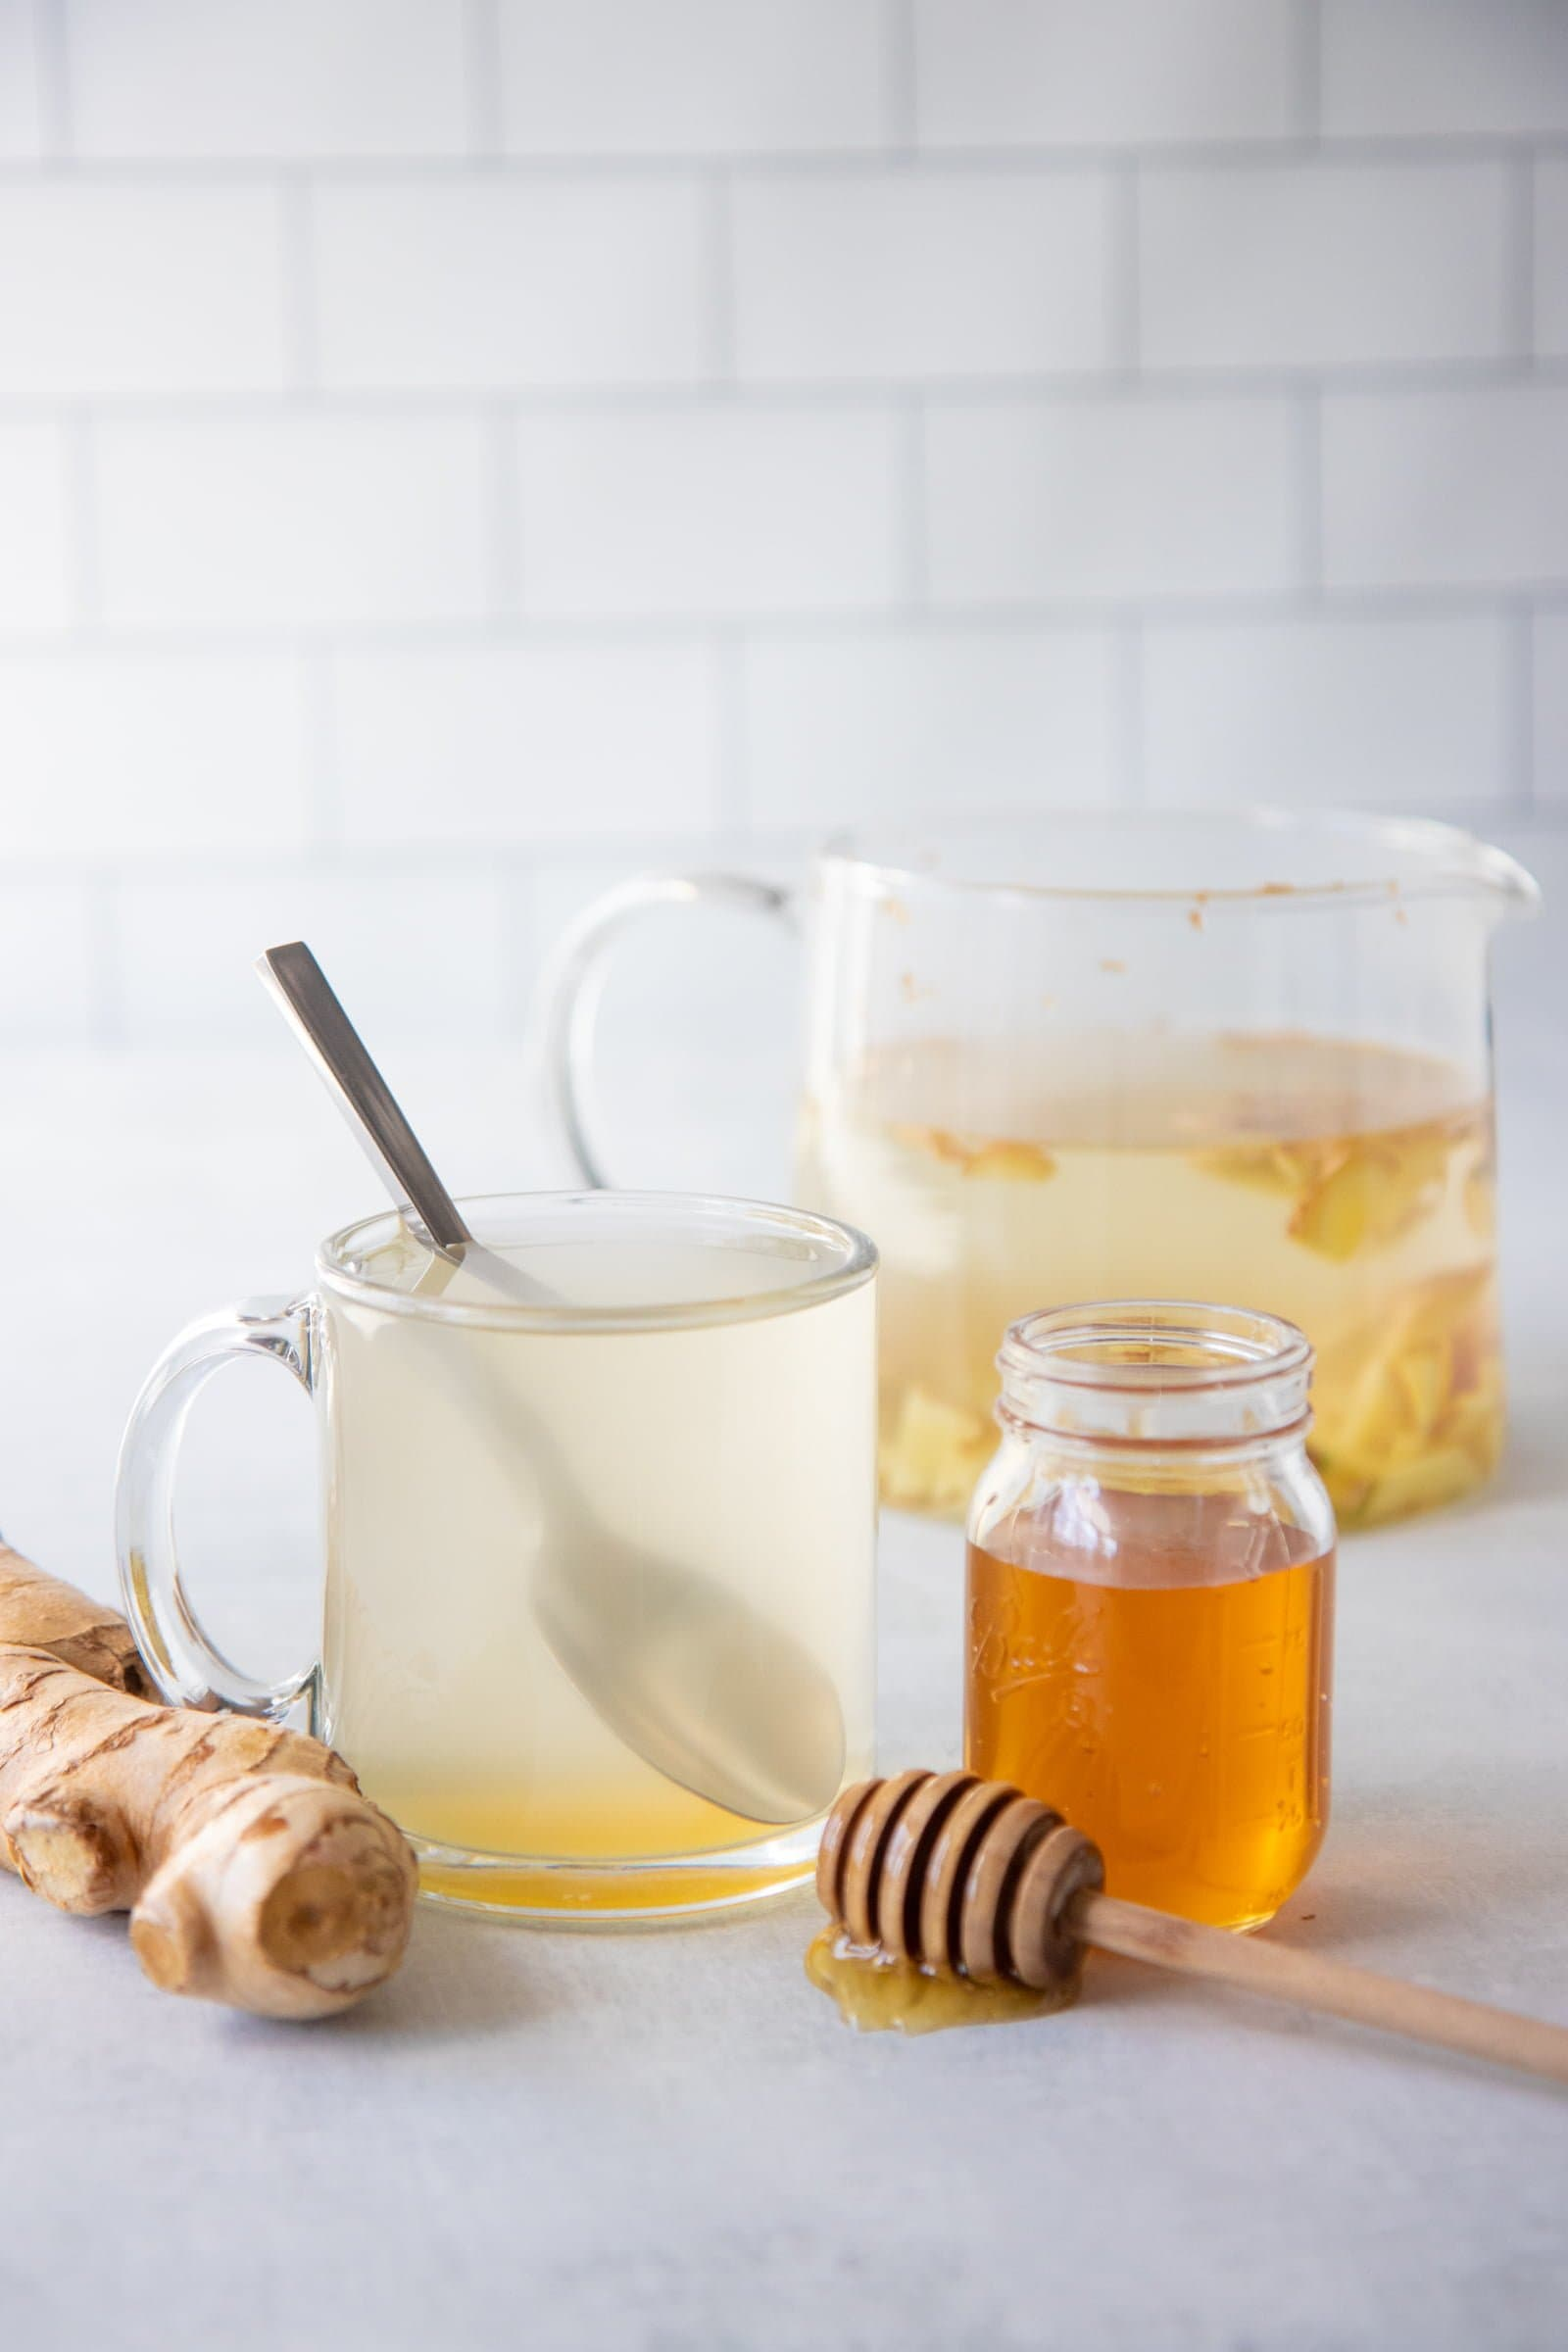 A clear mug of ginger tea with a spoonful of honey in it sits beside a jar of honey and a large glass pitcher of tea.